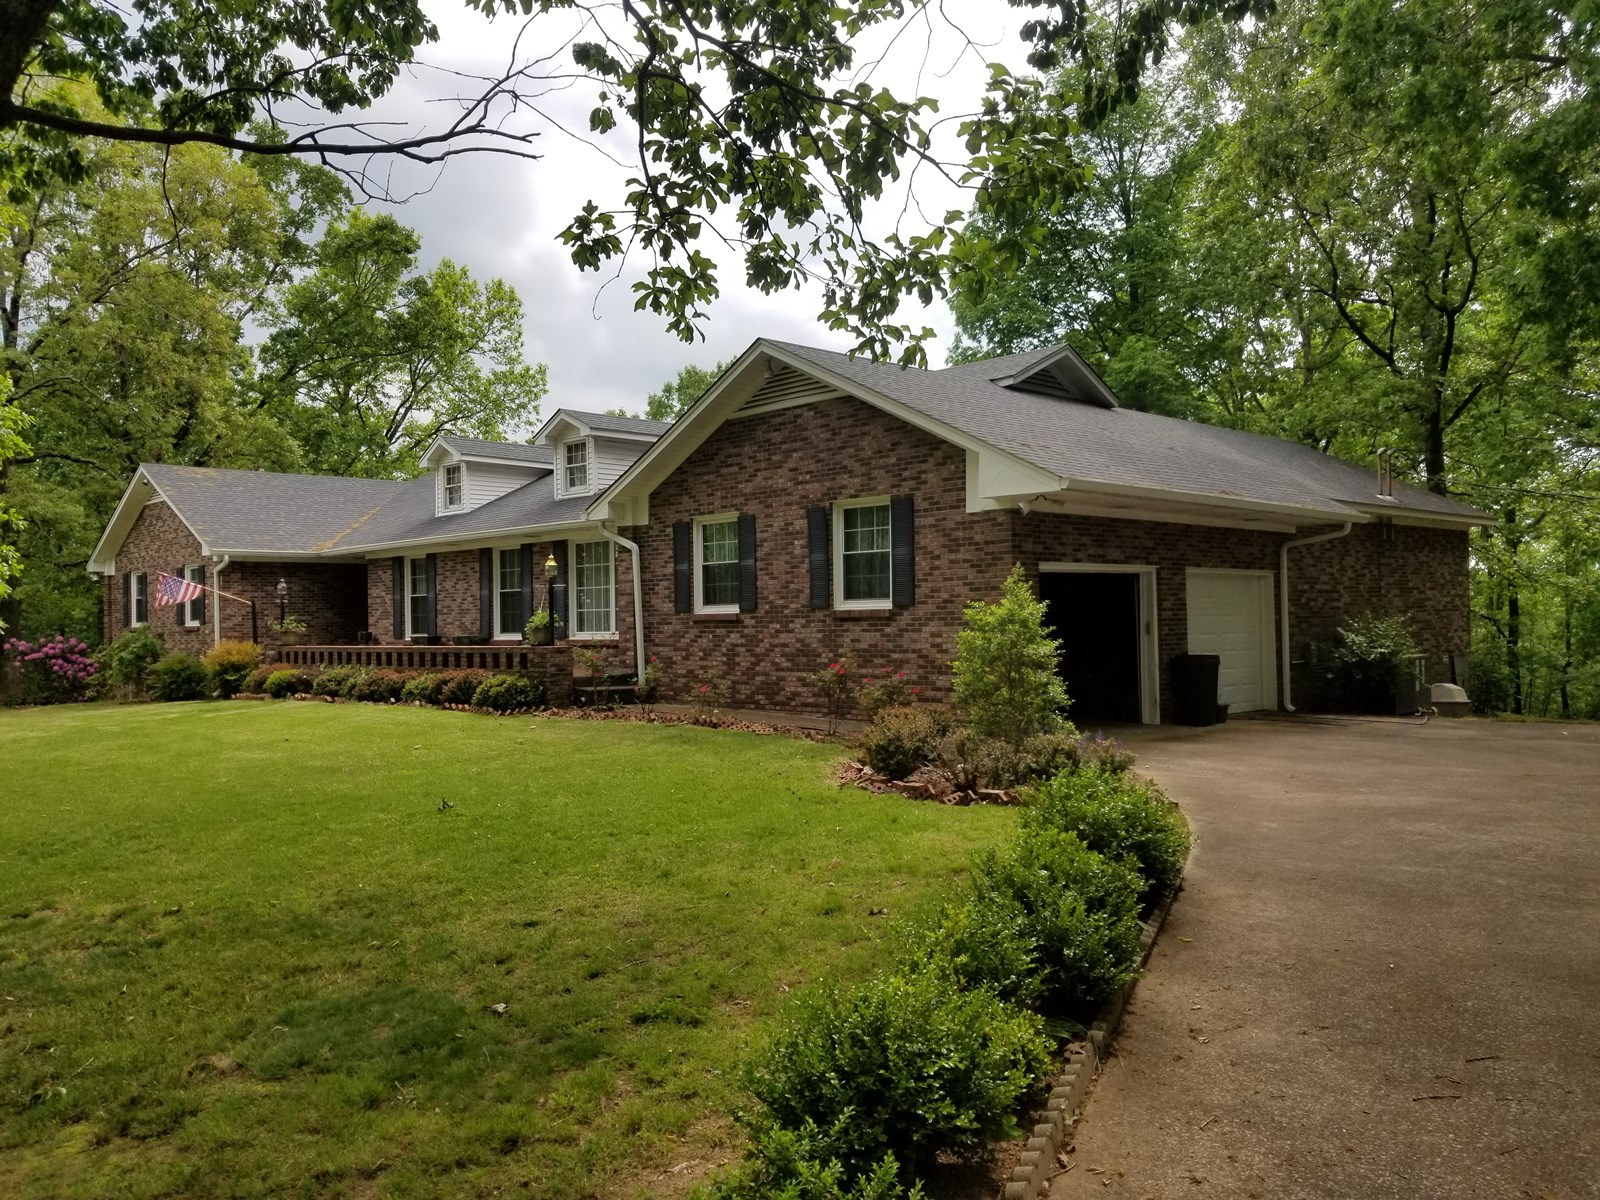 WAYNESBORO TN 5 BEDROOM 2.5 BATH BRICK HOME FOR SALE 9 ACRE